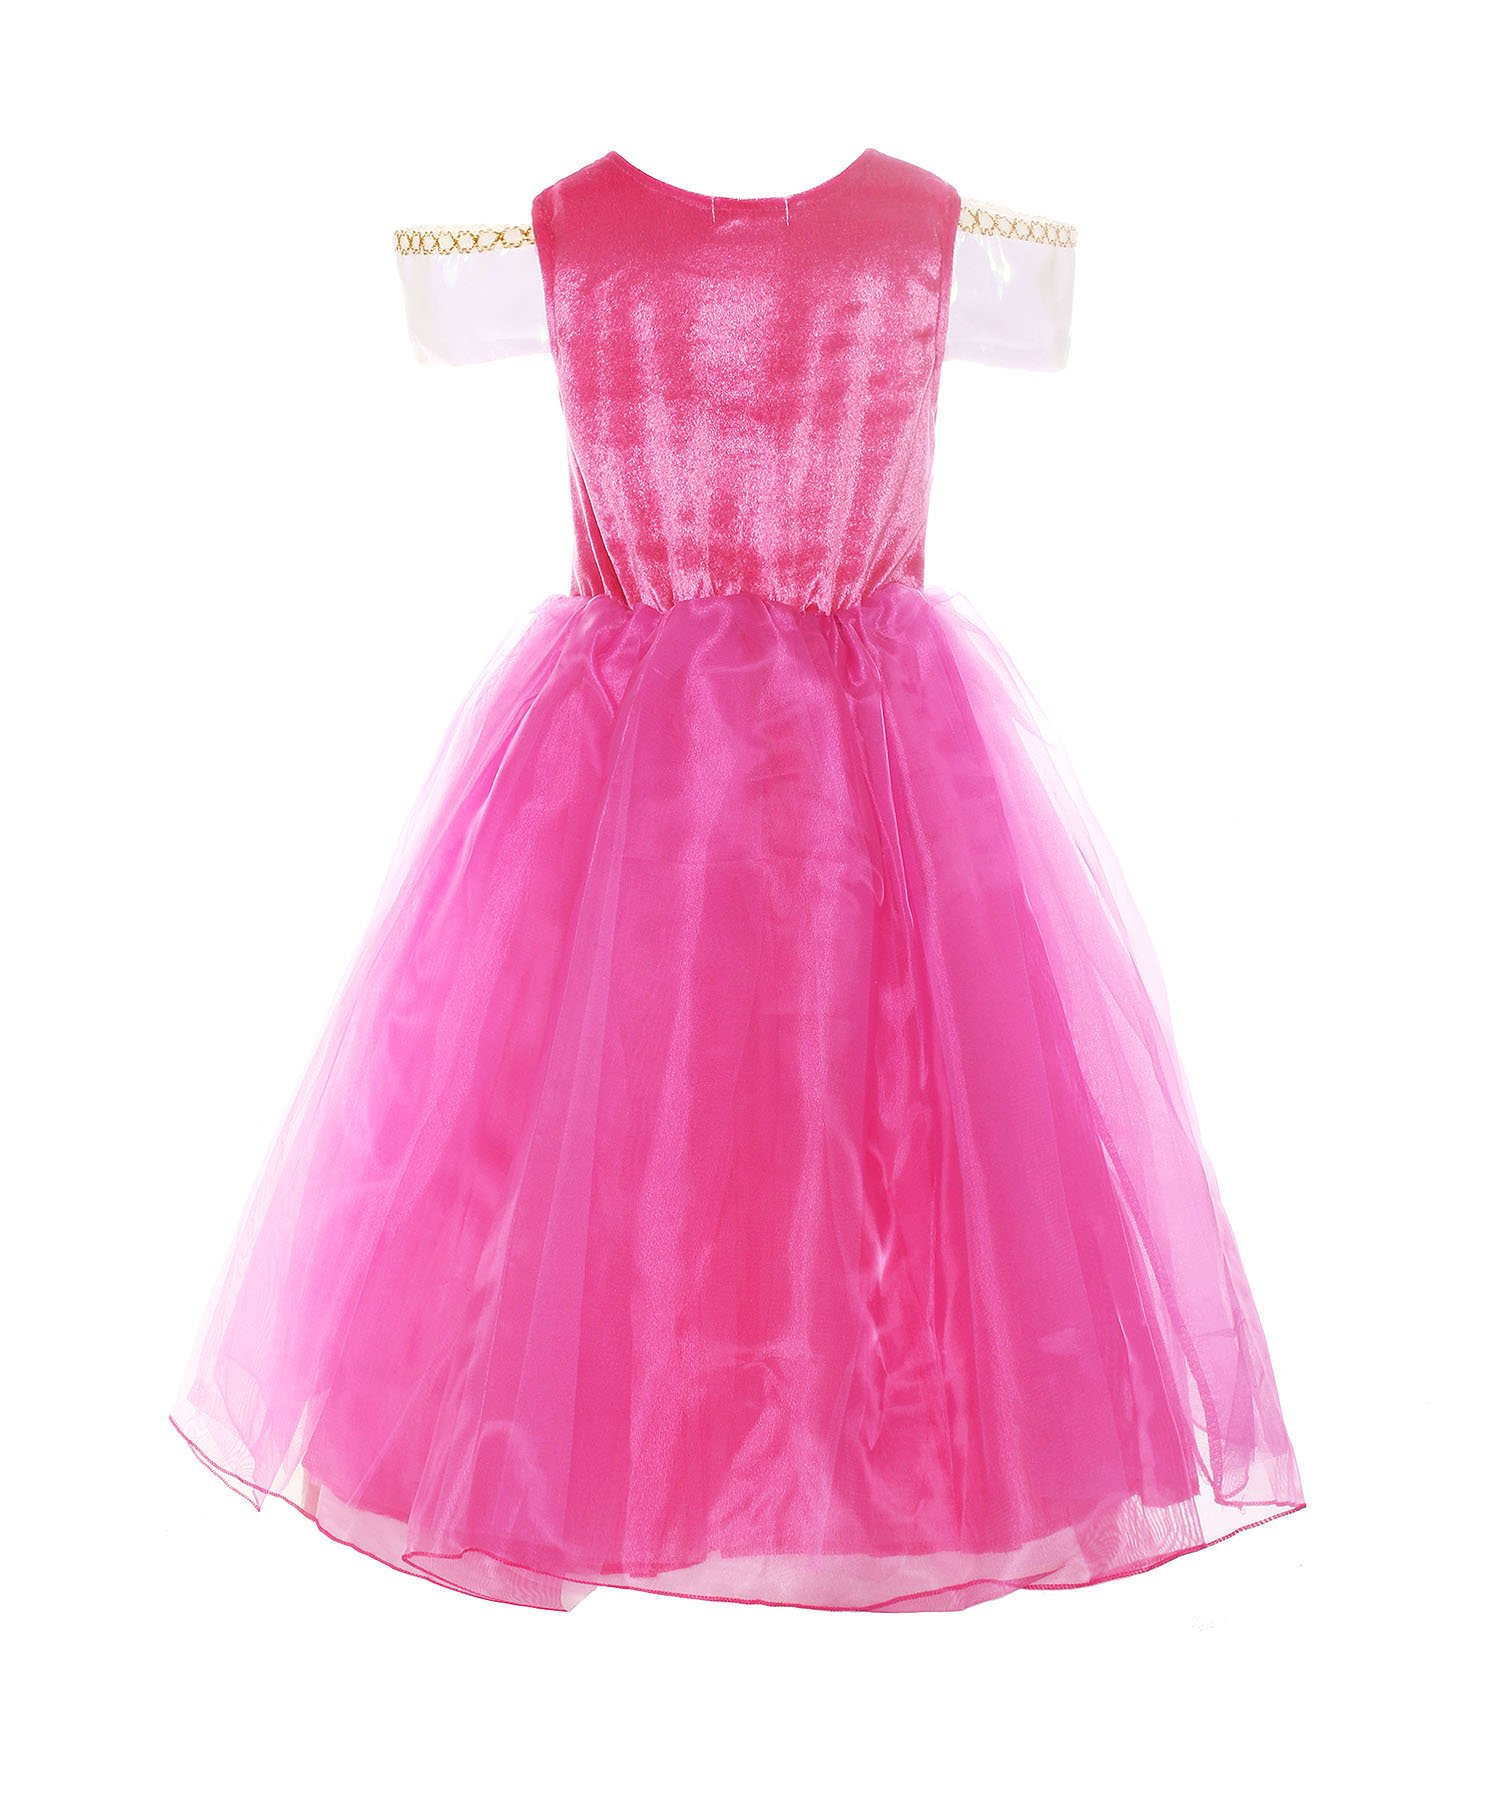 ReliBeauty Girls Drop Shoulder Princess Aurora Costume Dress up, Hot Pink, 7-8 by ReliBeauty (Image #2)